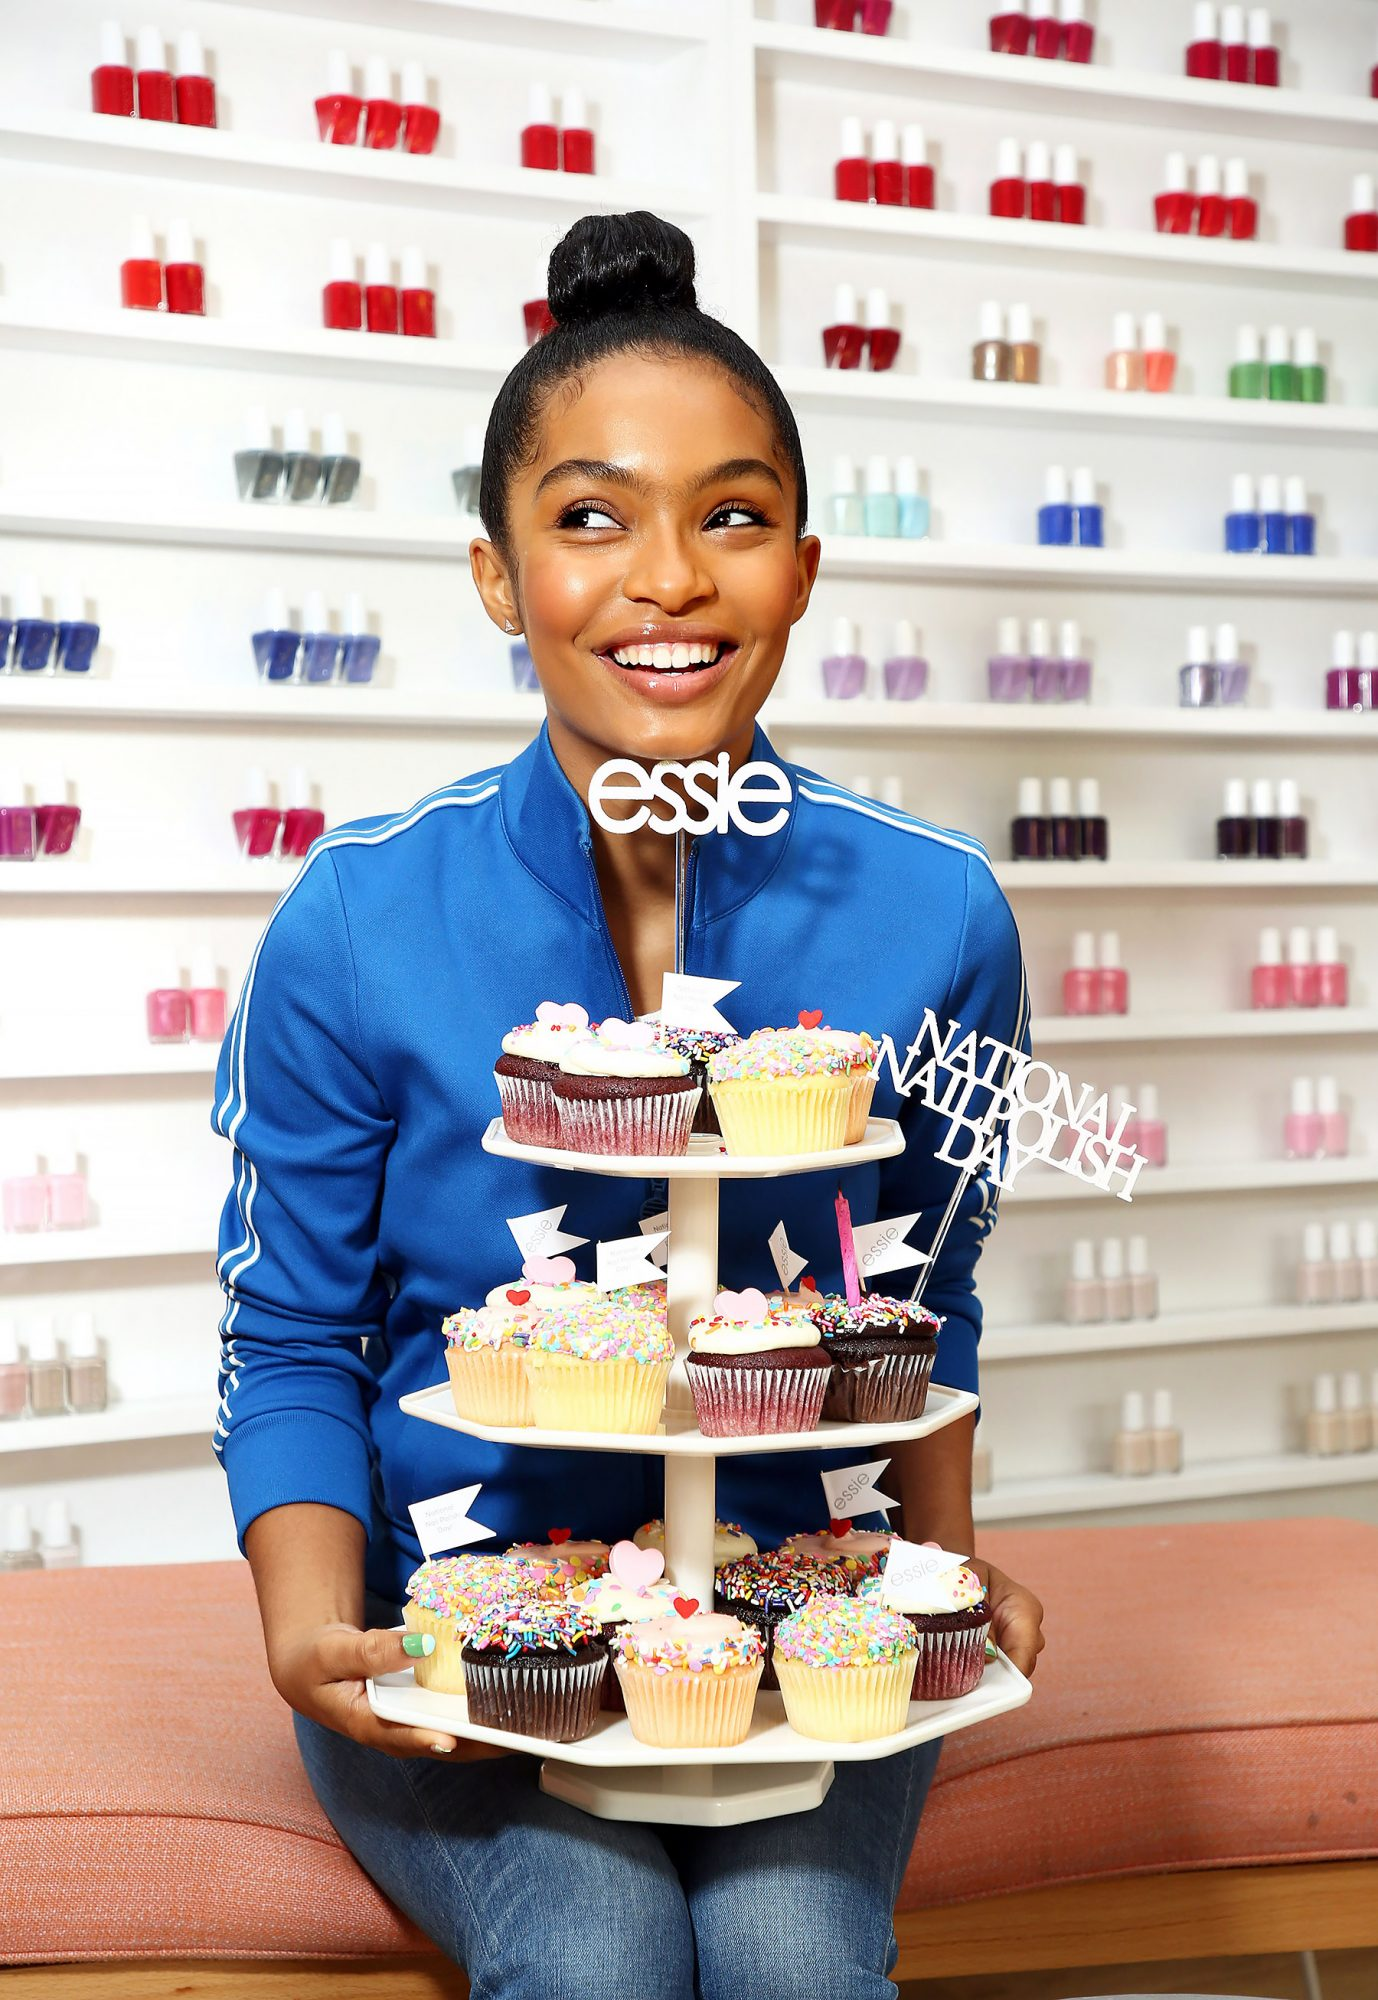 Yara Shahidi Sports a Fresh essie Manicure to Celebrate National Nail Polish Day